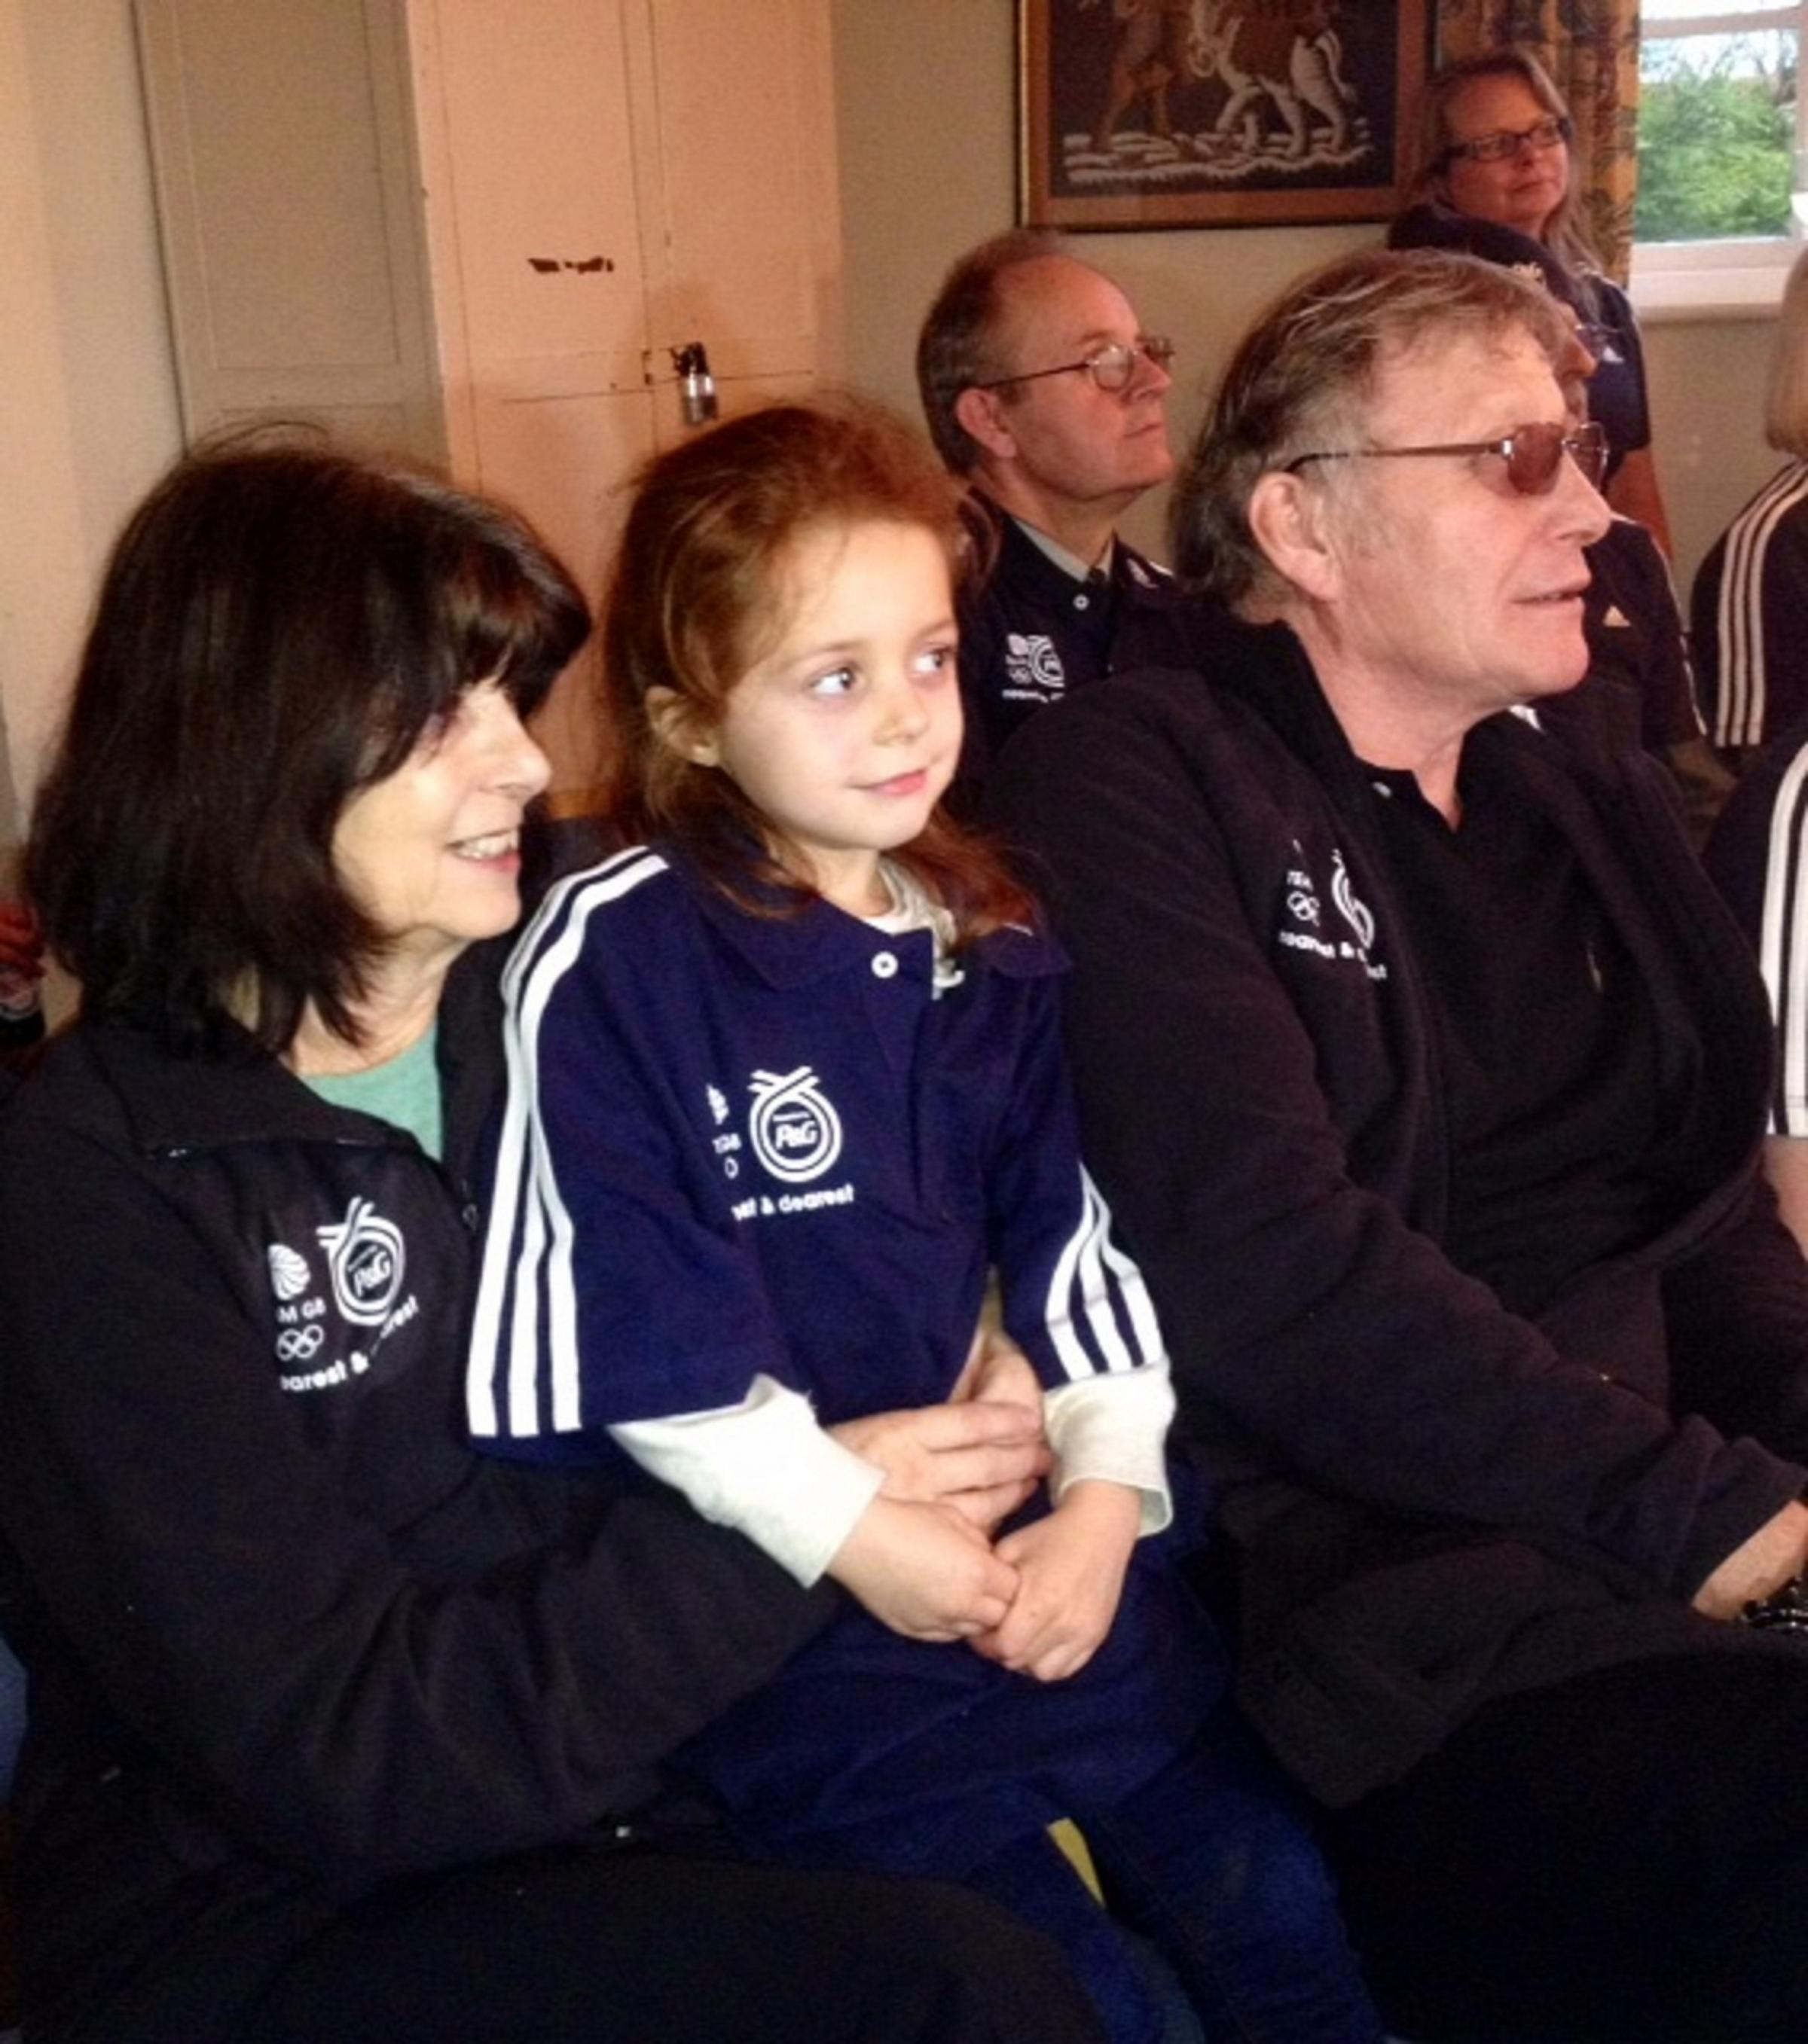 Shelley Rudman's daughter Ella, mum Josie and dad Jack watch her in action in Sochi in Pewsey today